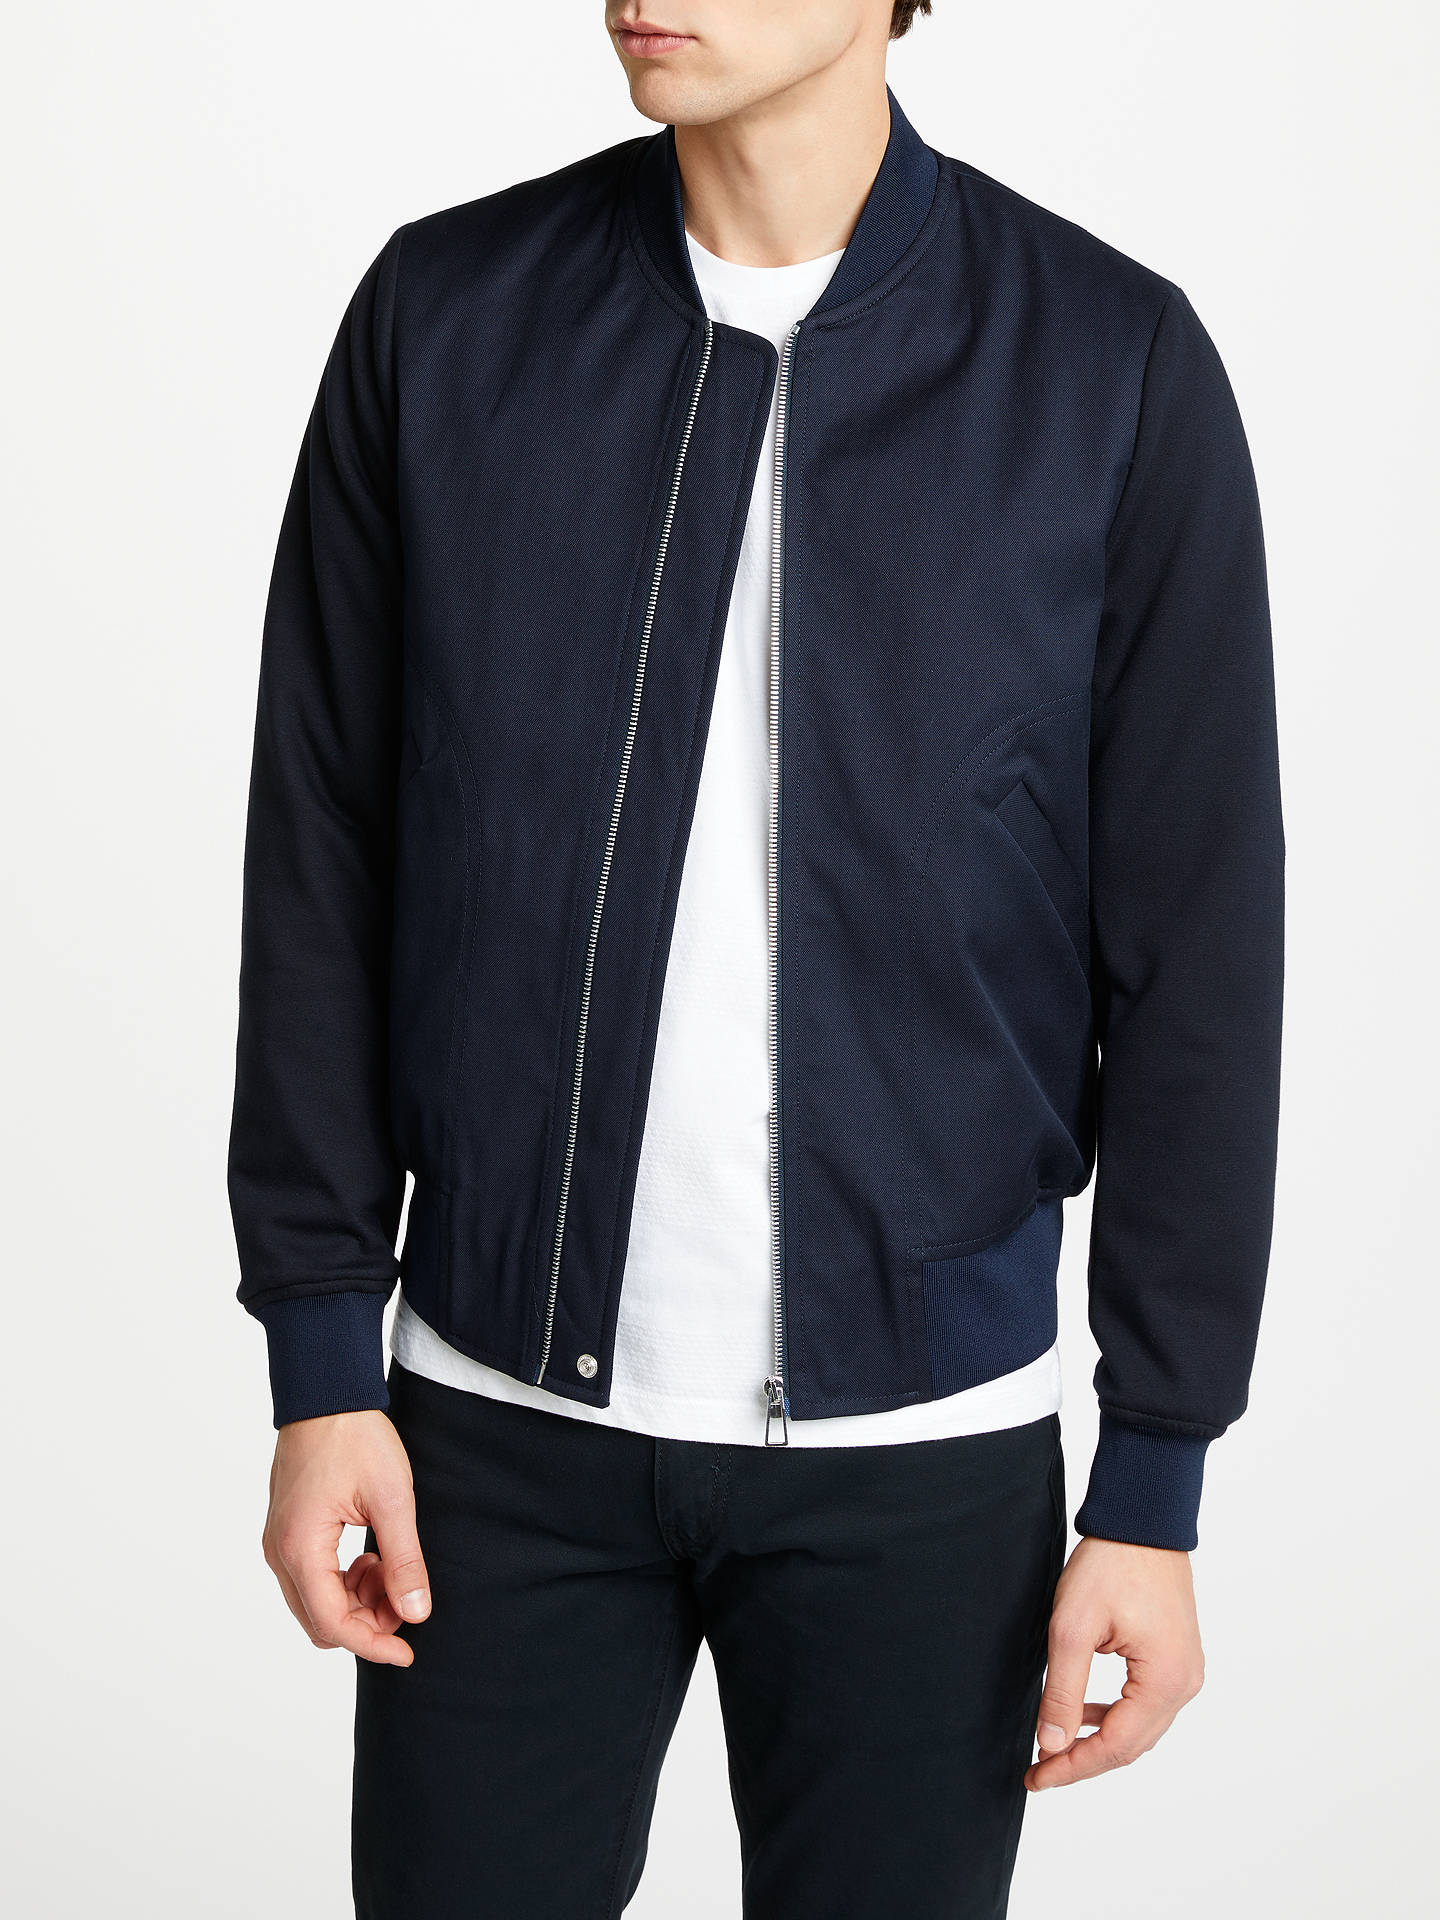 b30ce63b8aa1 Buy PS Paul Smith Tailored Bomber Jacket, Navy, S Online at johnlewis.com  ...